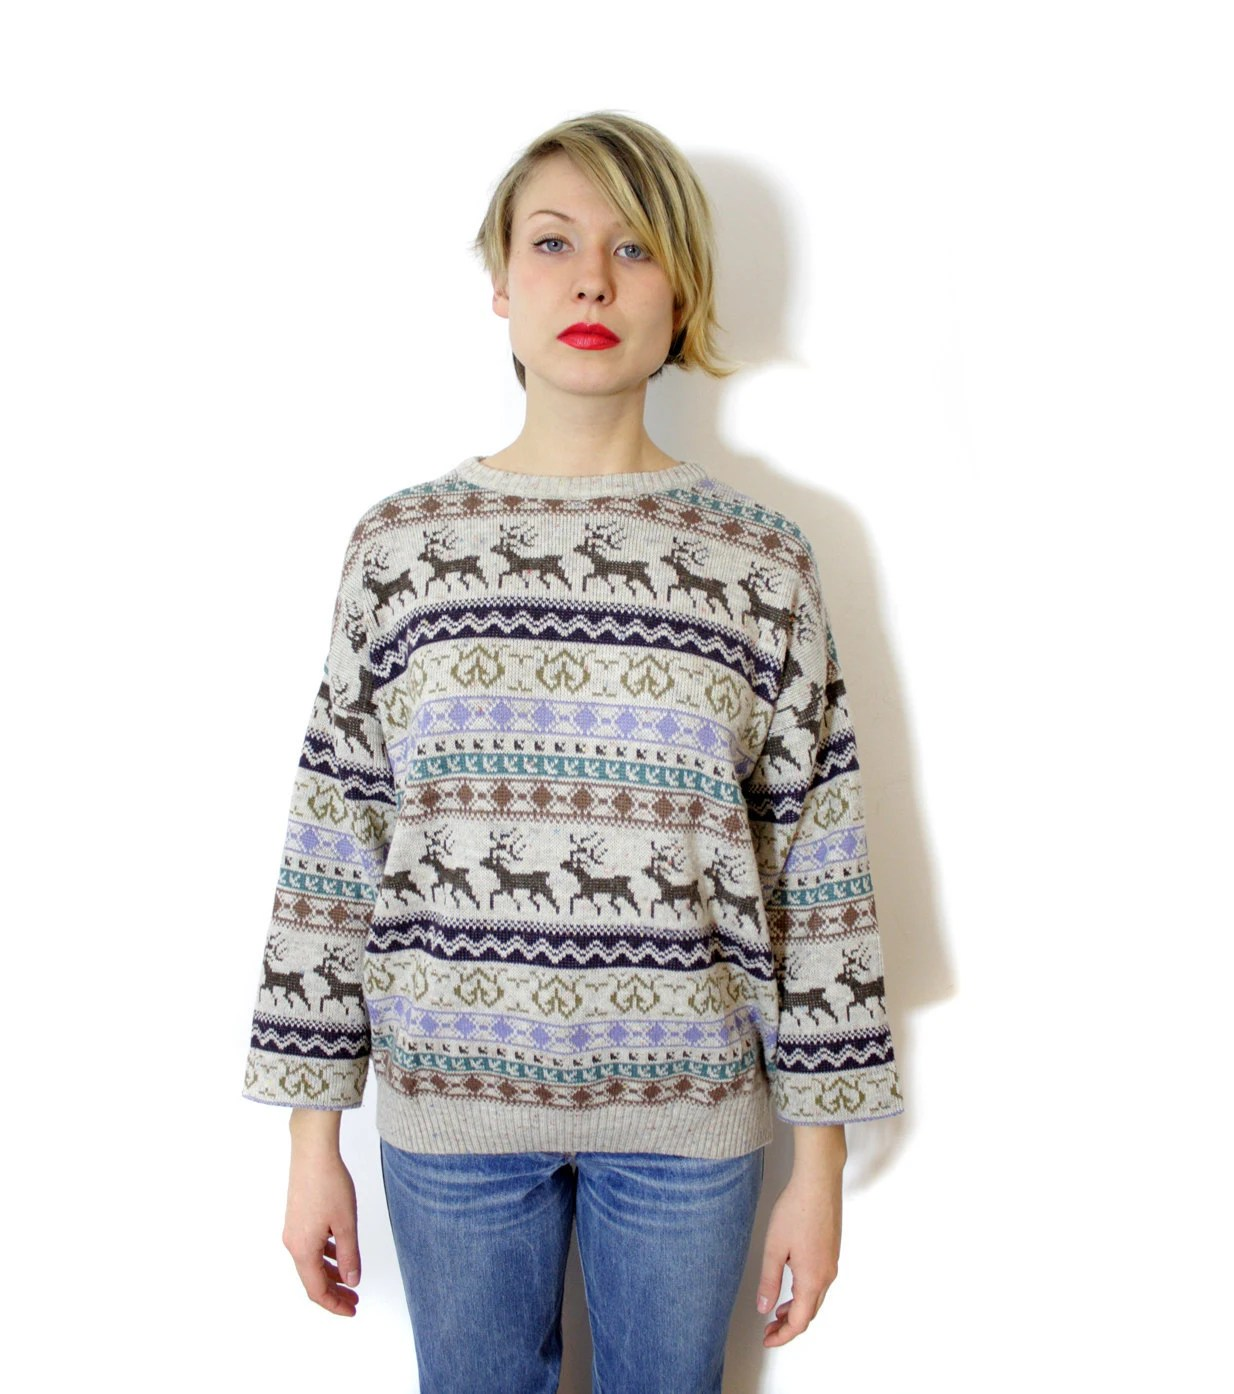 Vintage sweater / deer fair isle gray brown purple green knit / size L - nemres